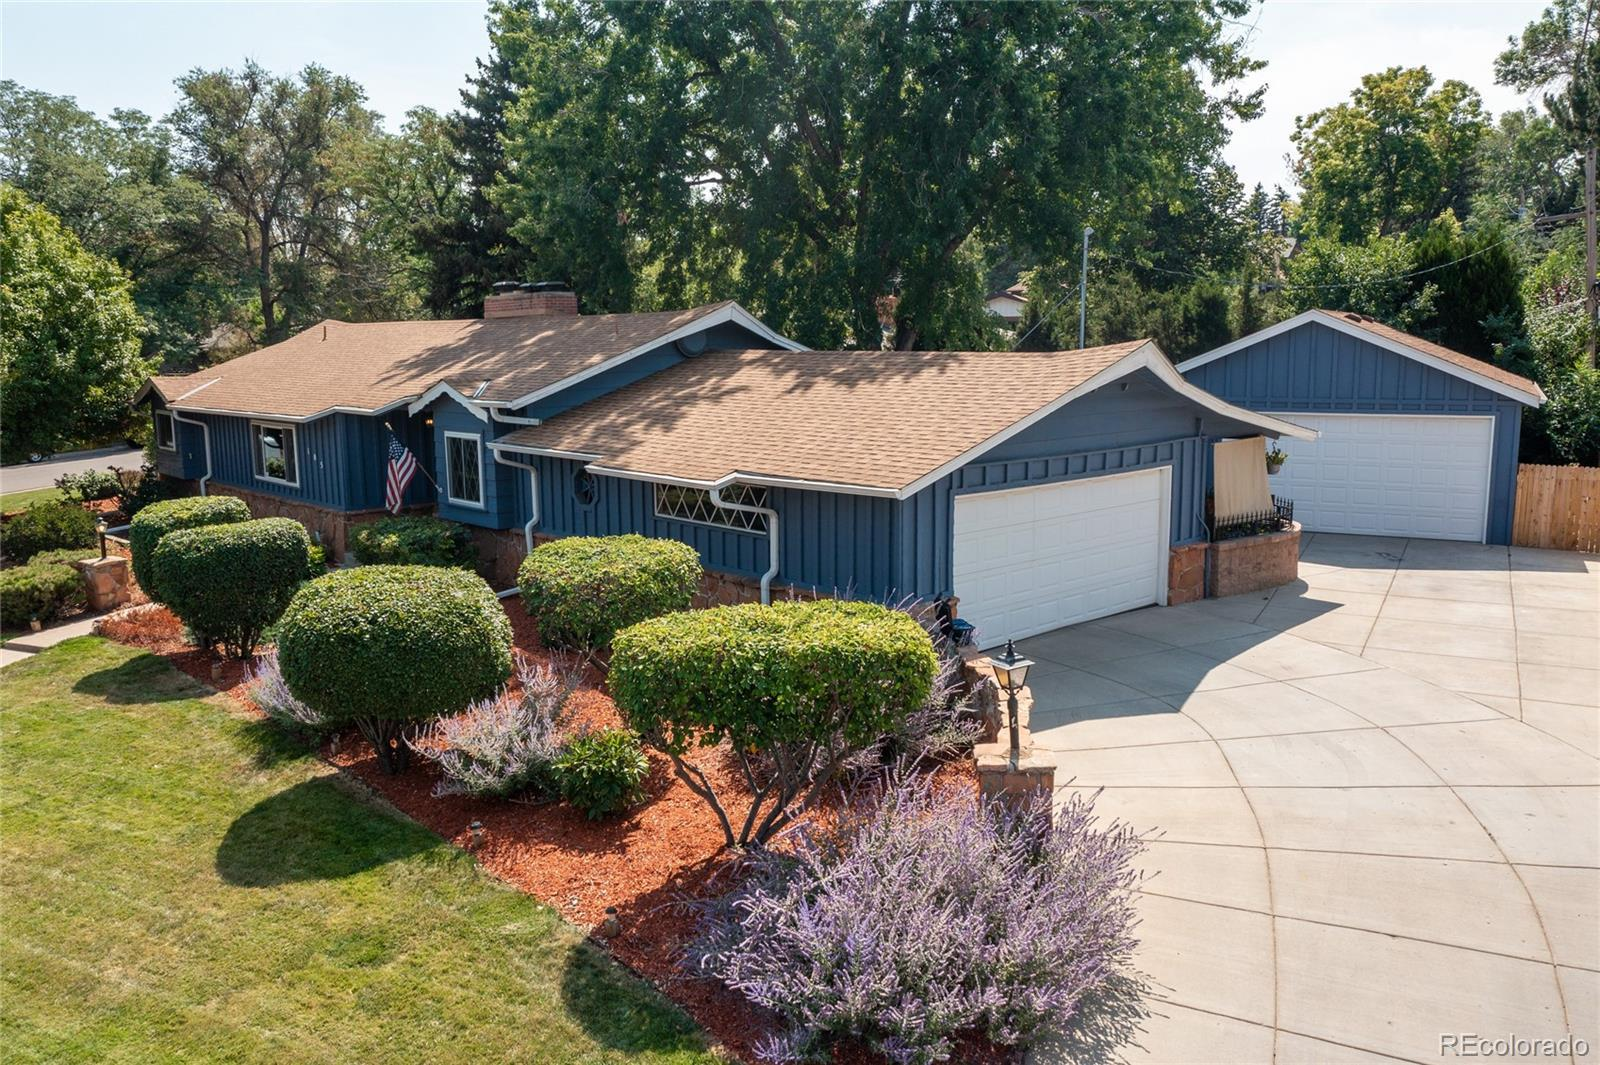 105 S Brentwood Street, Lakewood, CO 80226 - #: 6687174